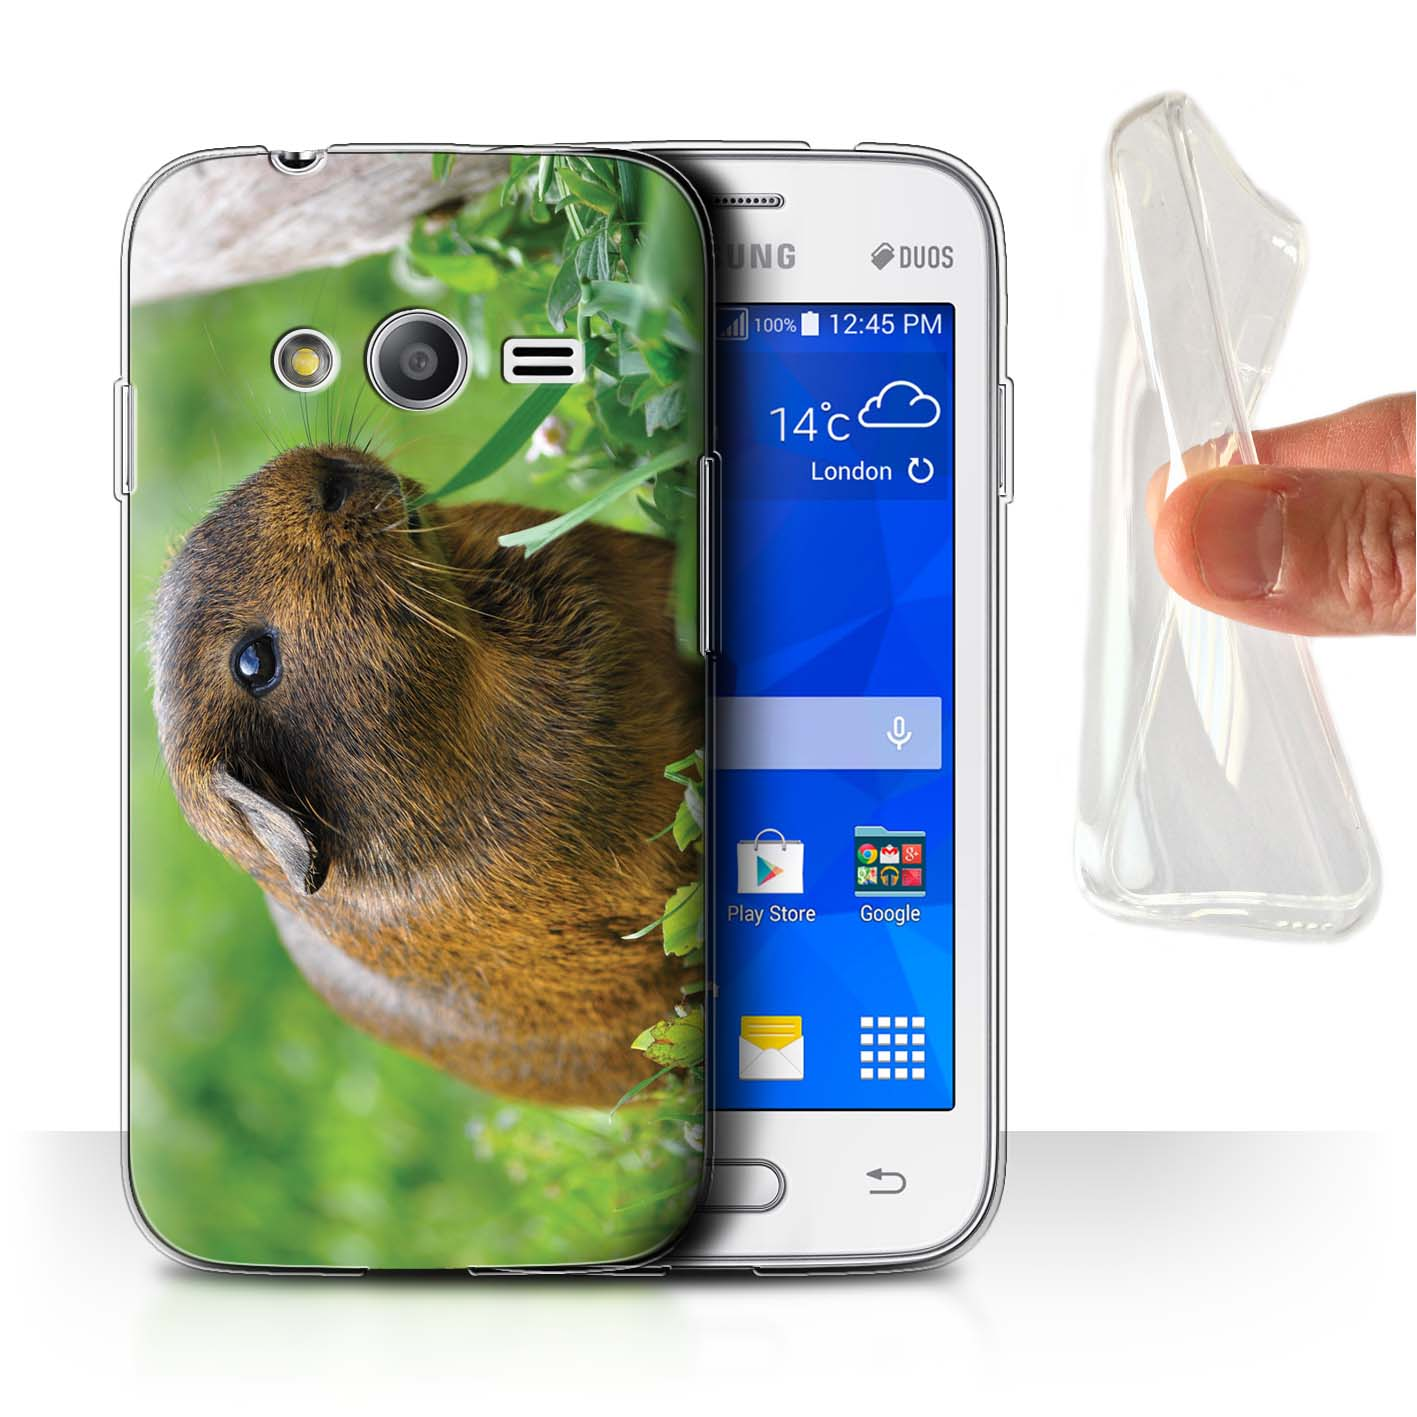 Coque-Etui-Gel-TPU-pour-Samsung-Galaxy-J-Note-Smartphone-Animaux-Mignons-Housse